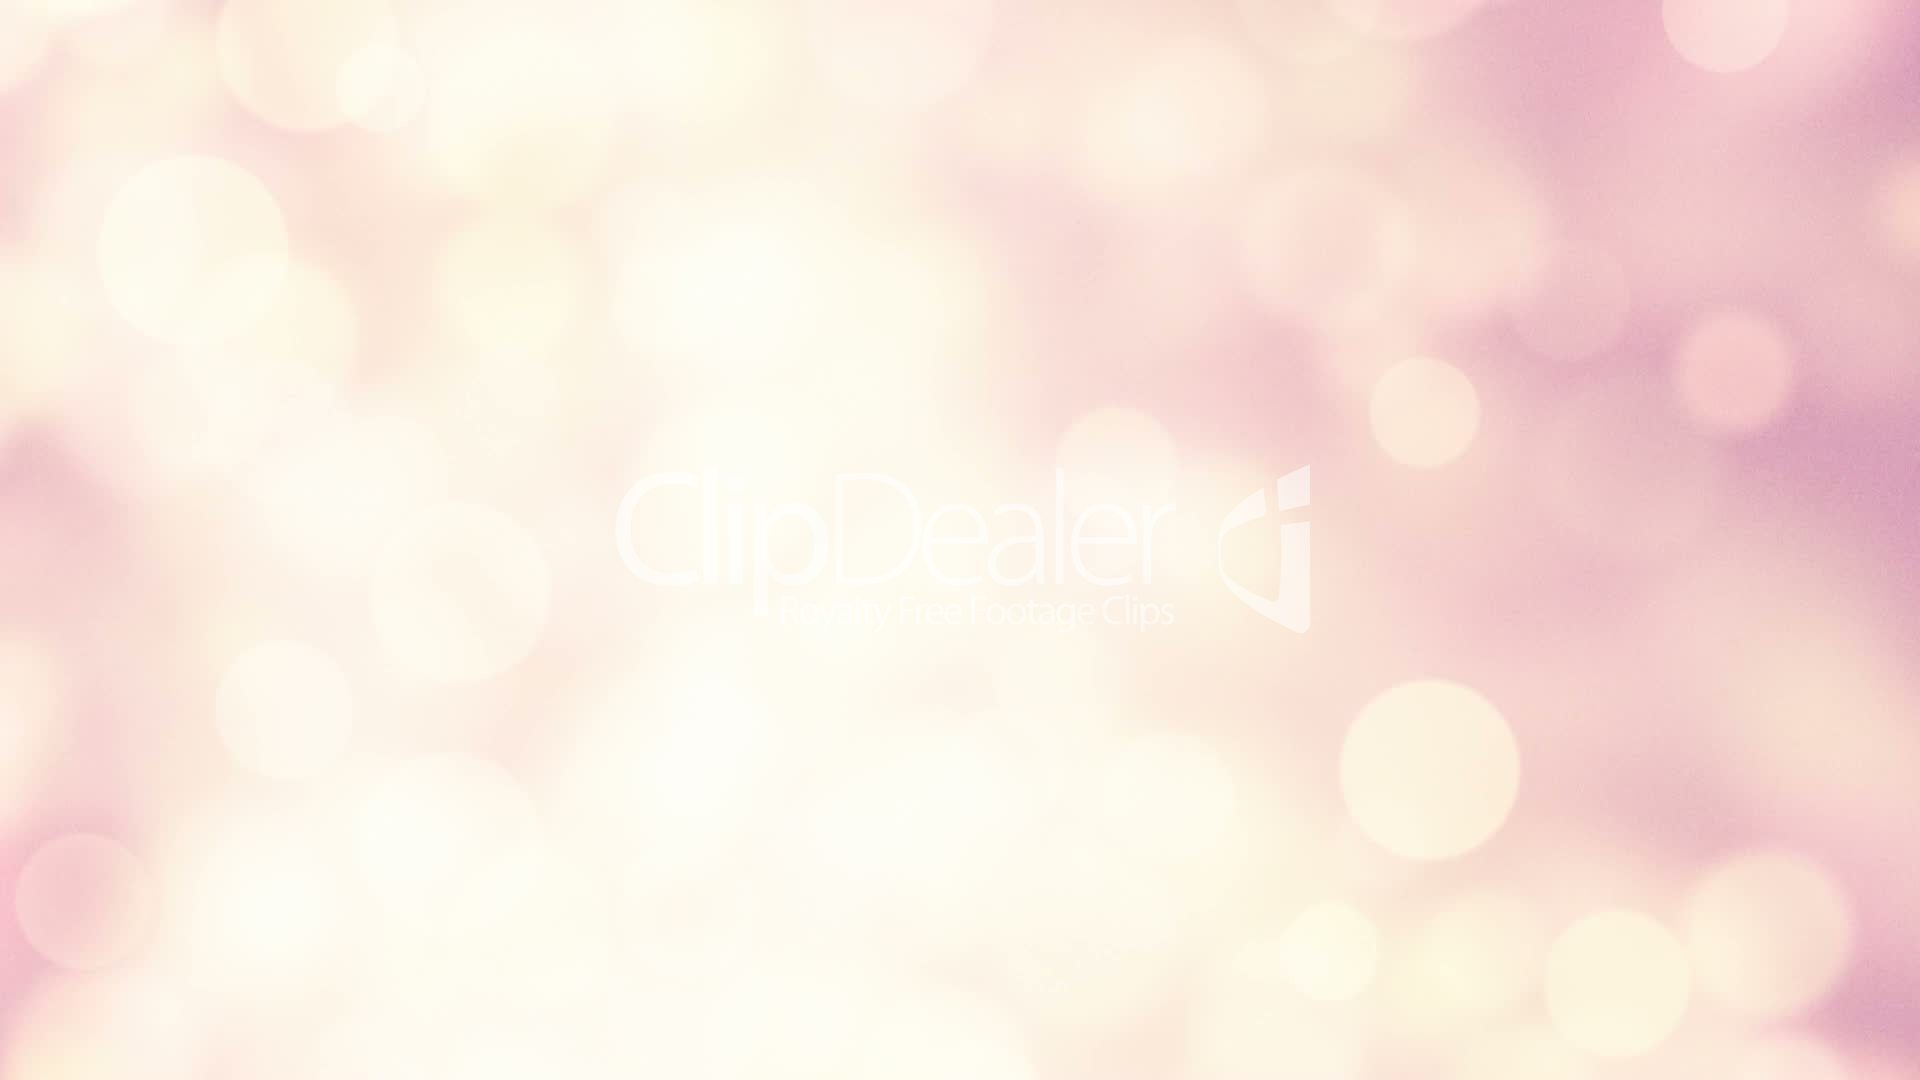 Light Pink Background Powerpoint Backgrounds For Free Powerpoint